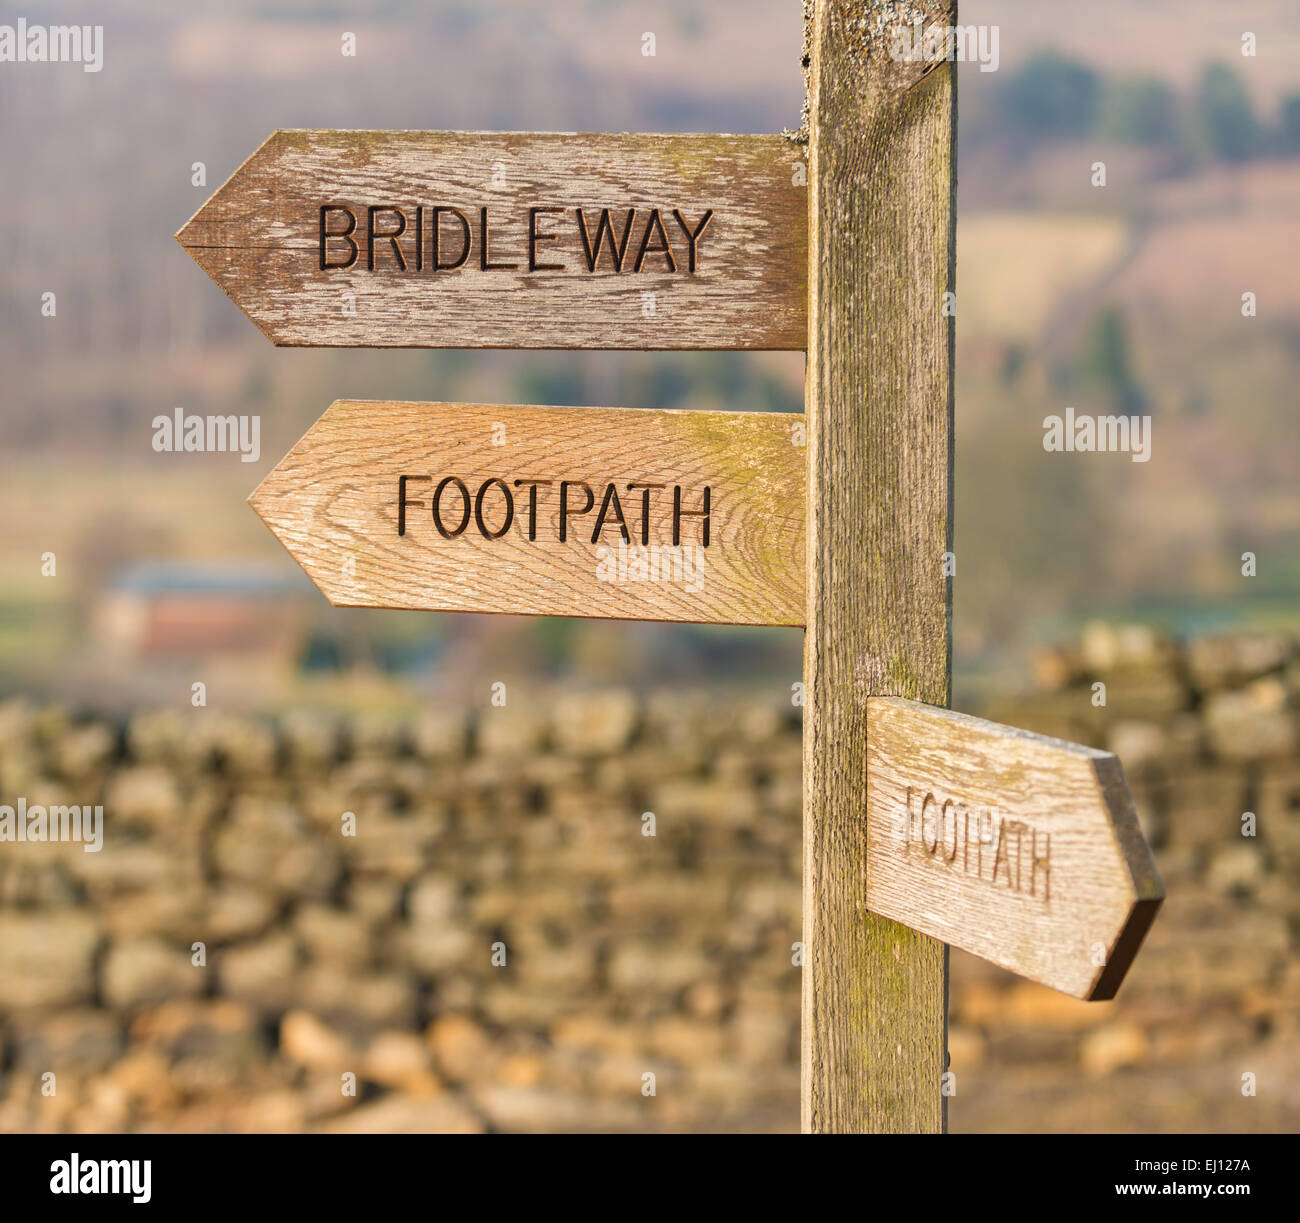 A wooden directions sign points the way to footpaths and a bridleway in a countryside setting. Stock Photo